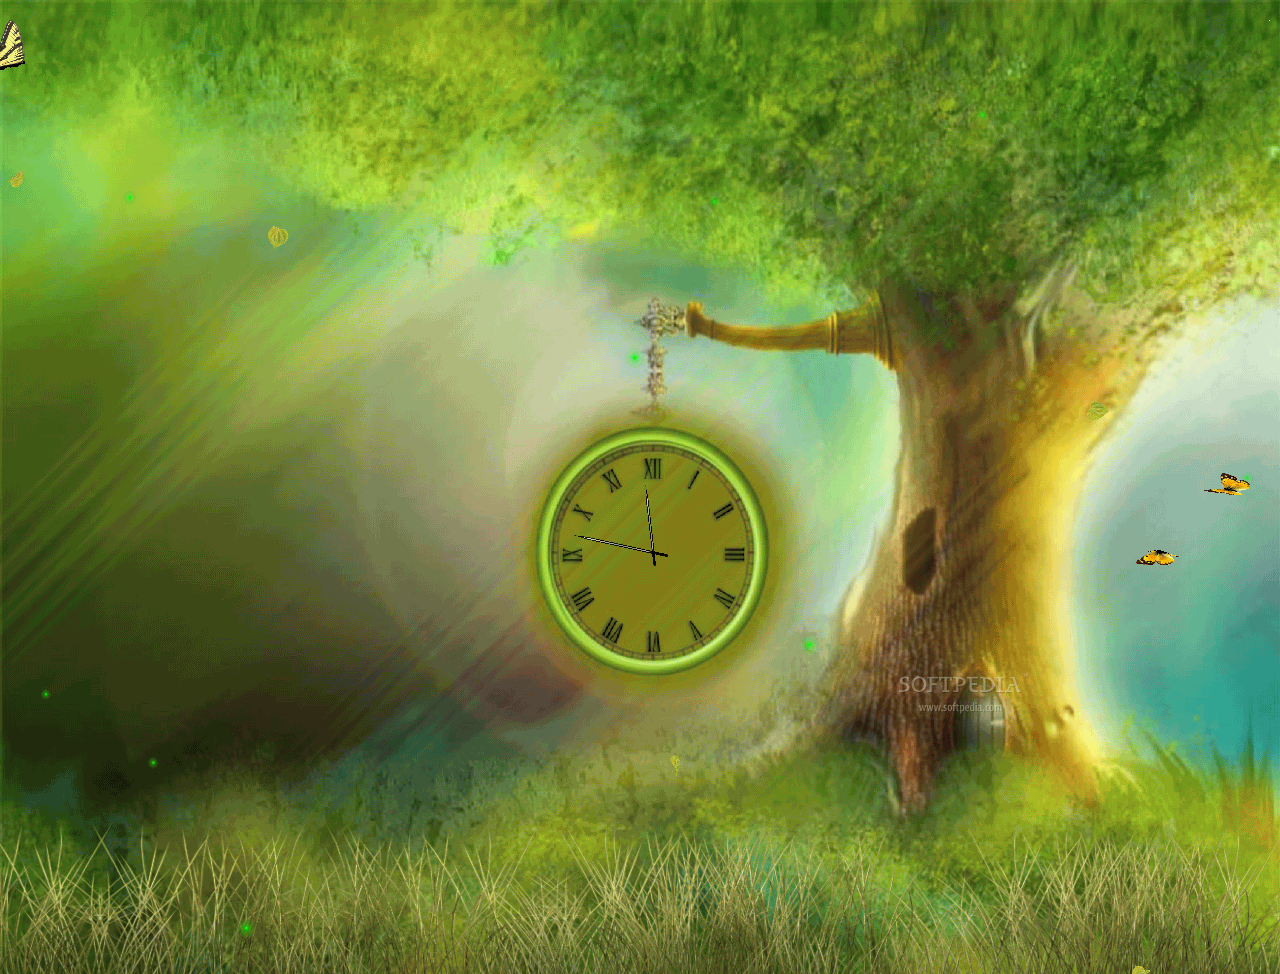 Live Animated Wallpapers For Windows 7 Free Download Full Version Download Fantasy Clock Animated Wallpaper 1 0 0